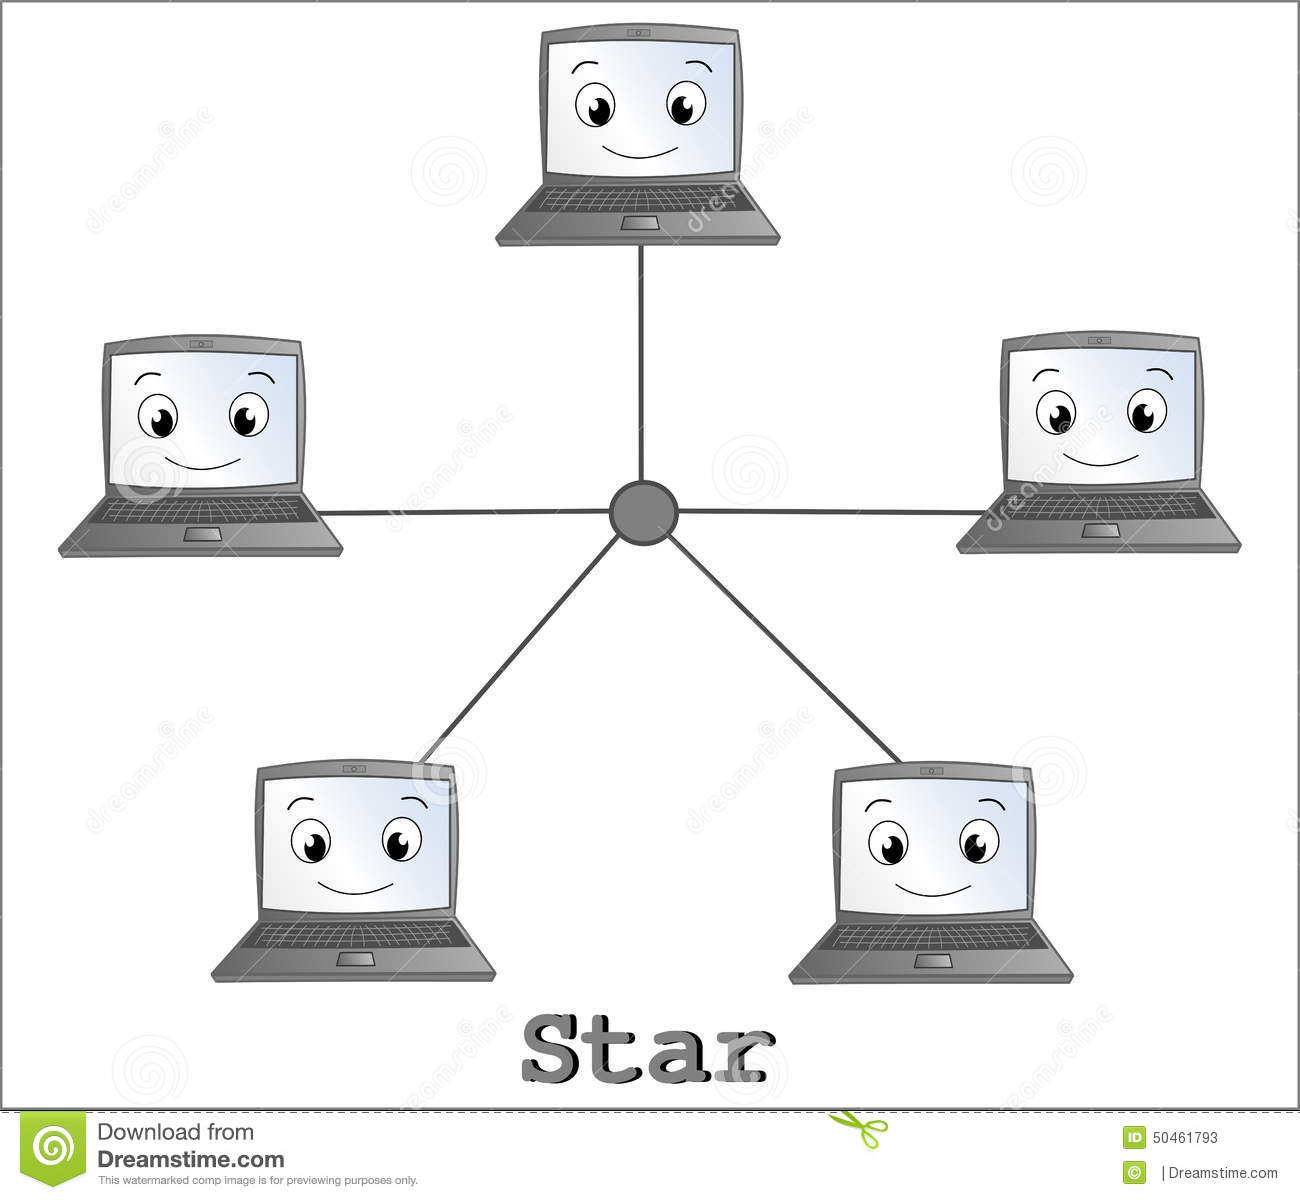 Star network topology connection with fun cartoon computer.